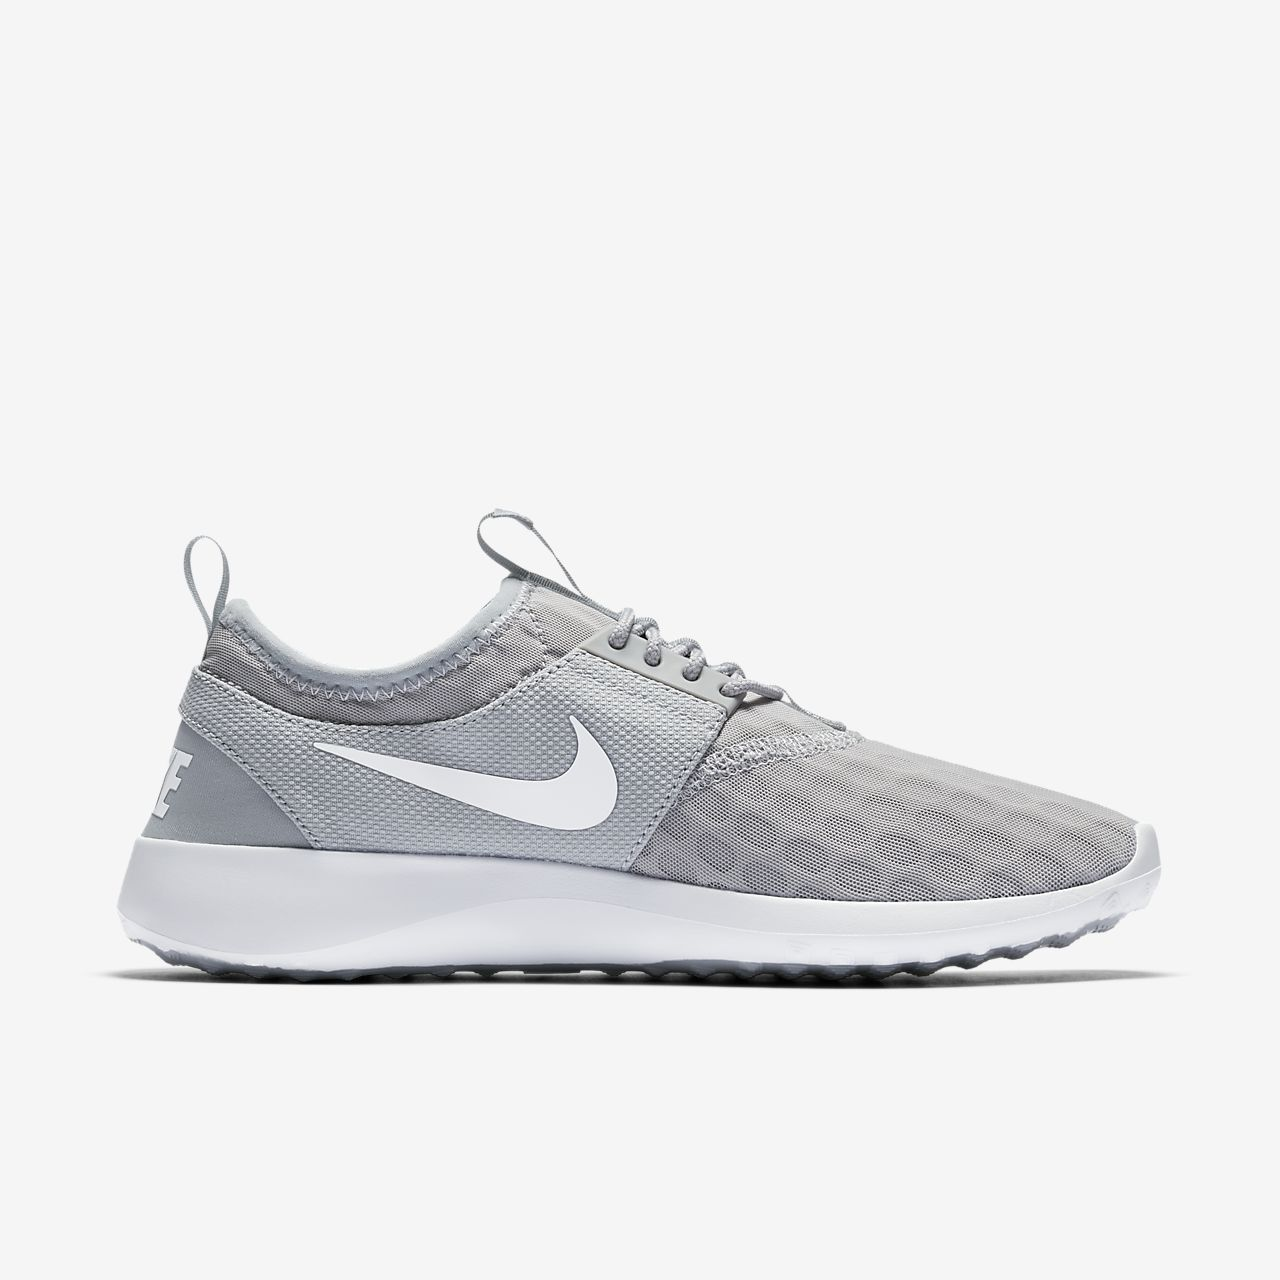 Low Resolution Nike Juvenate Women's Shoe Nike Juvenate Women's Shoe